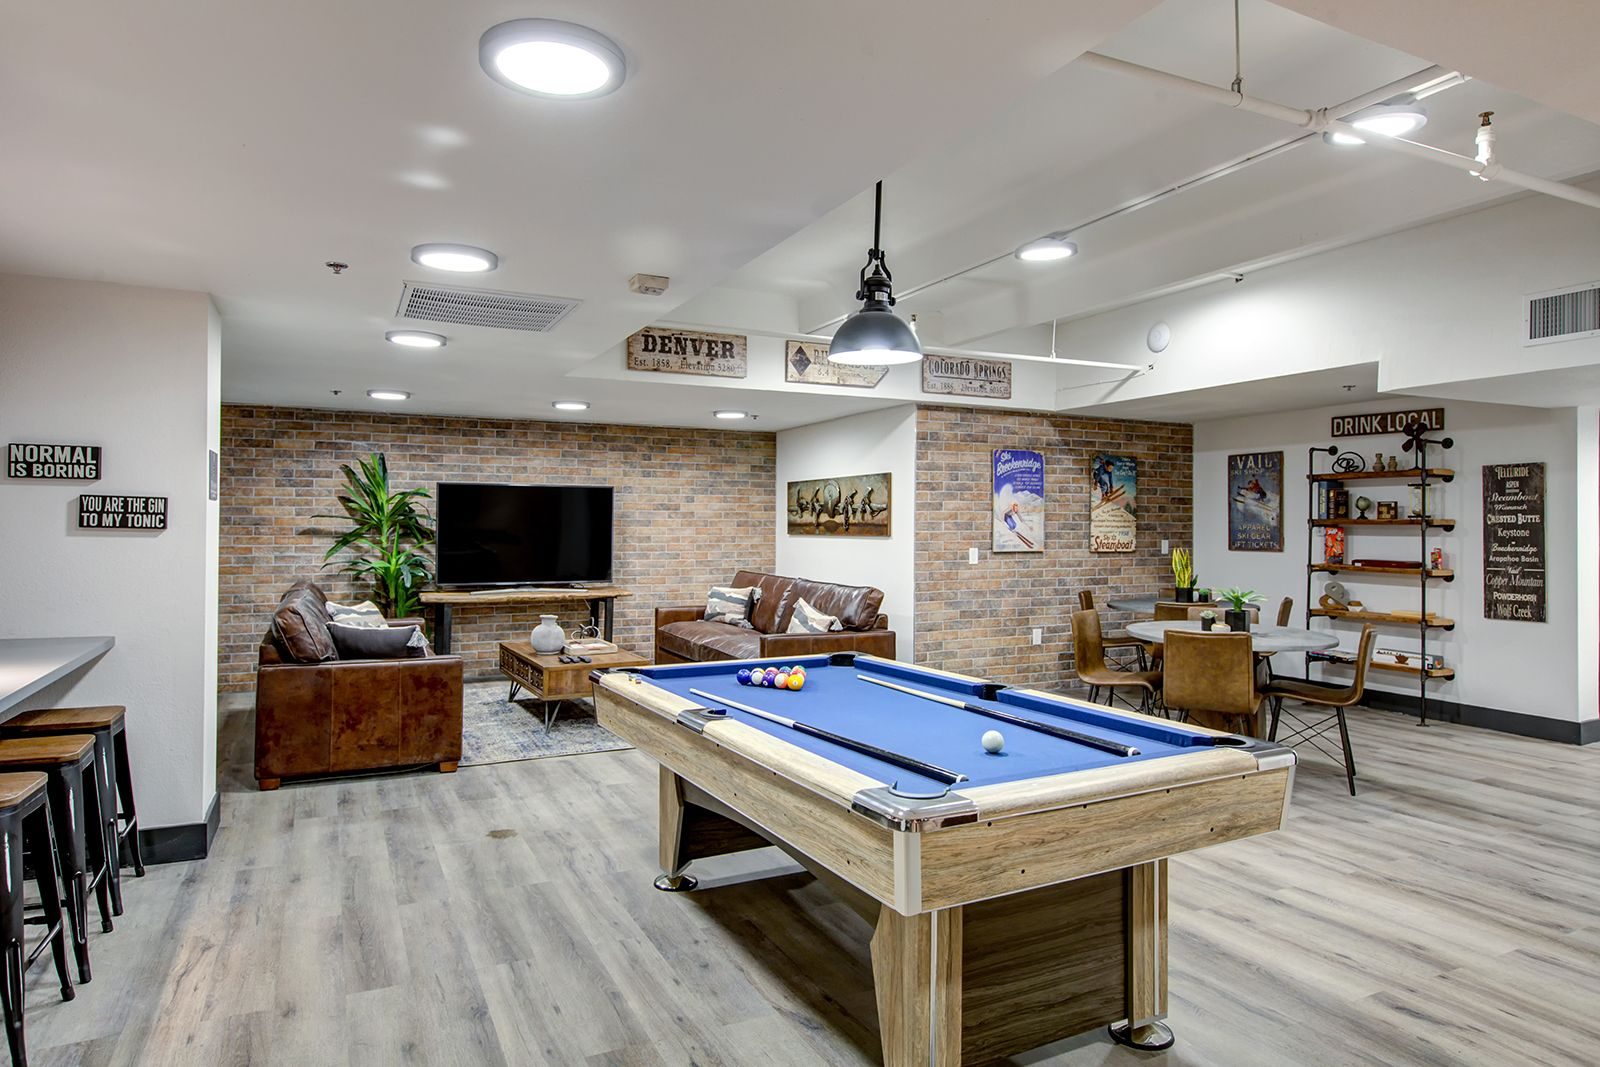 There S Always Something To Do In Our Game Room Arrive800penn Denver Co Apartments Ihavearrived Denver Apartments Apartment Apartment Communities